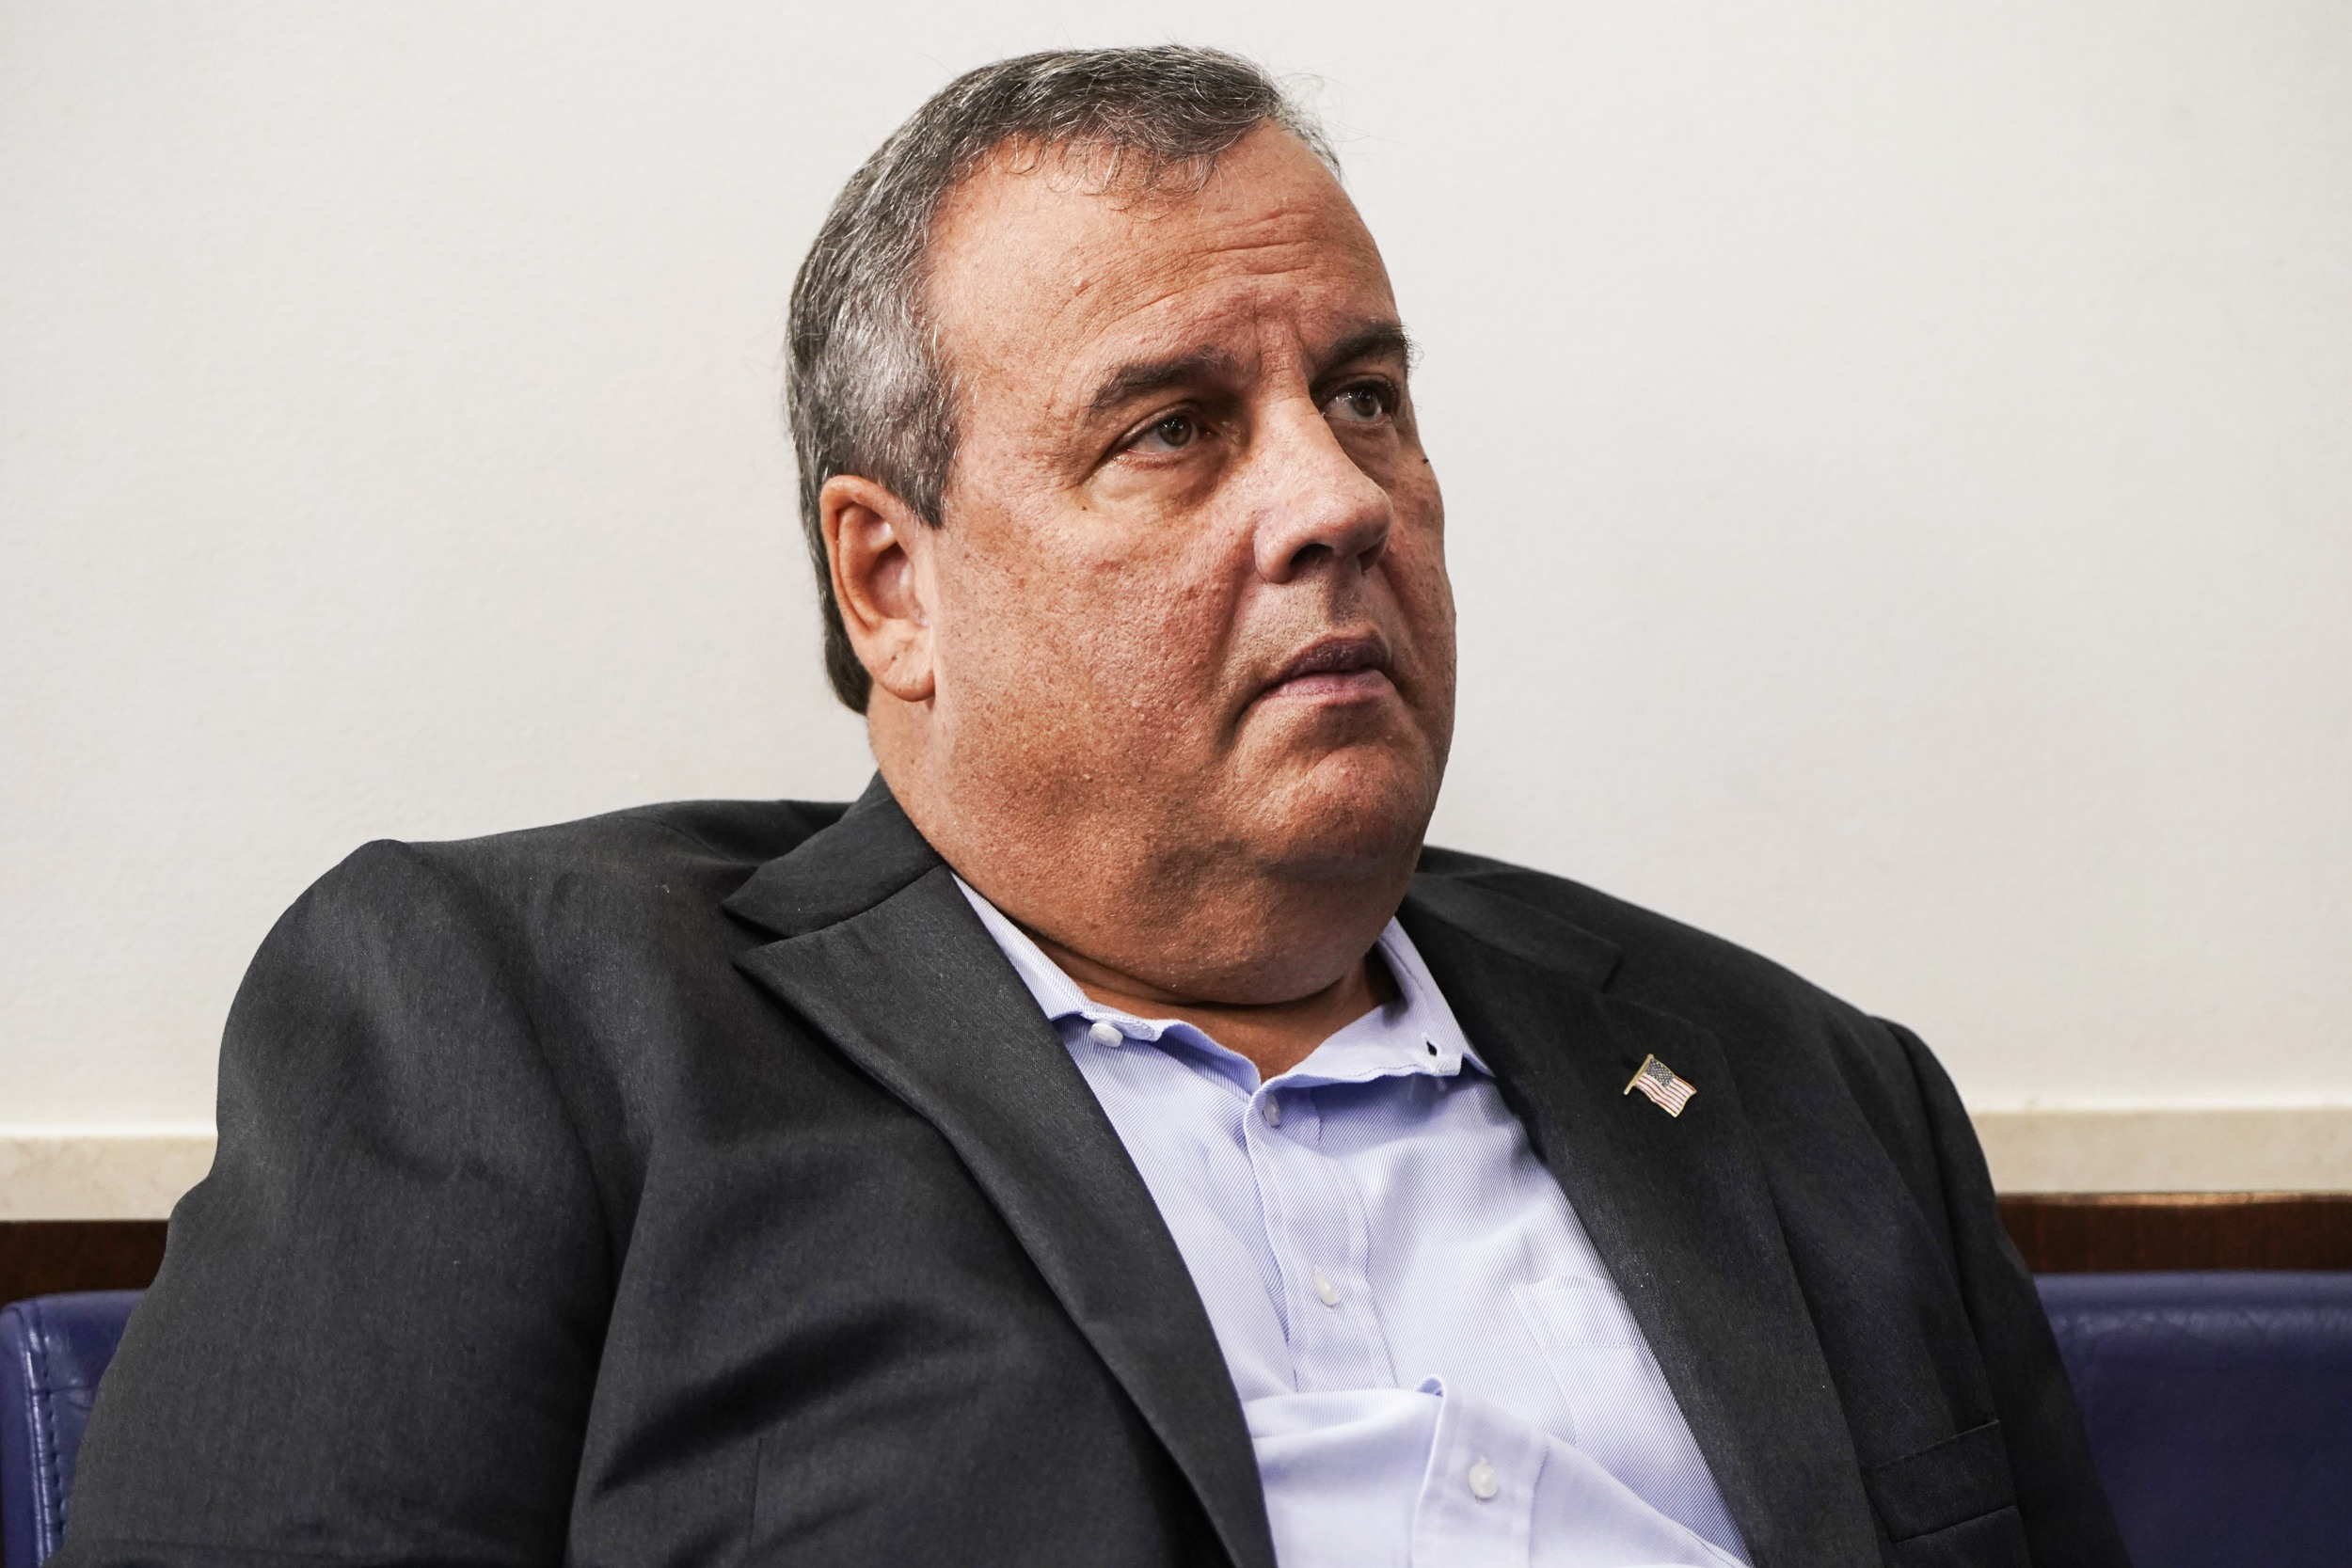 Chris Christie turns into Biden attack dog in early days of administration